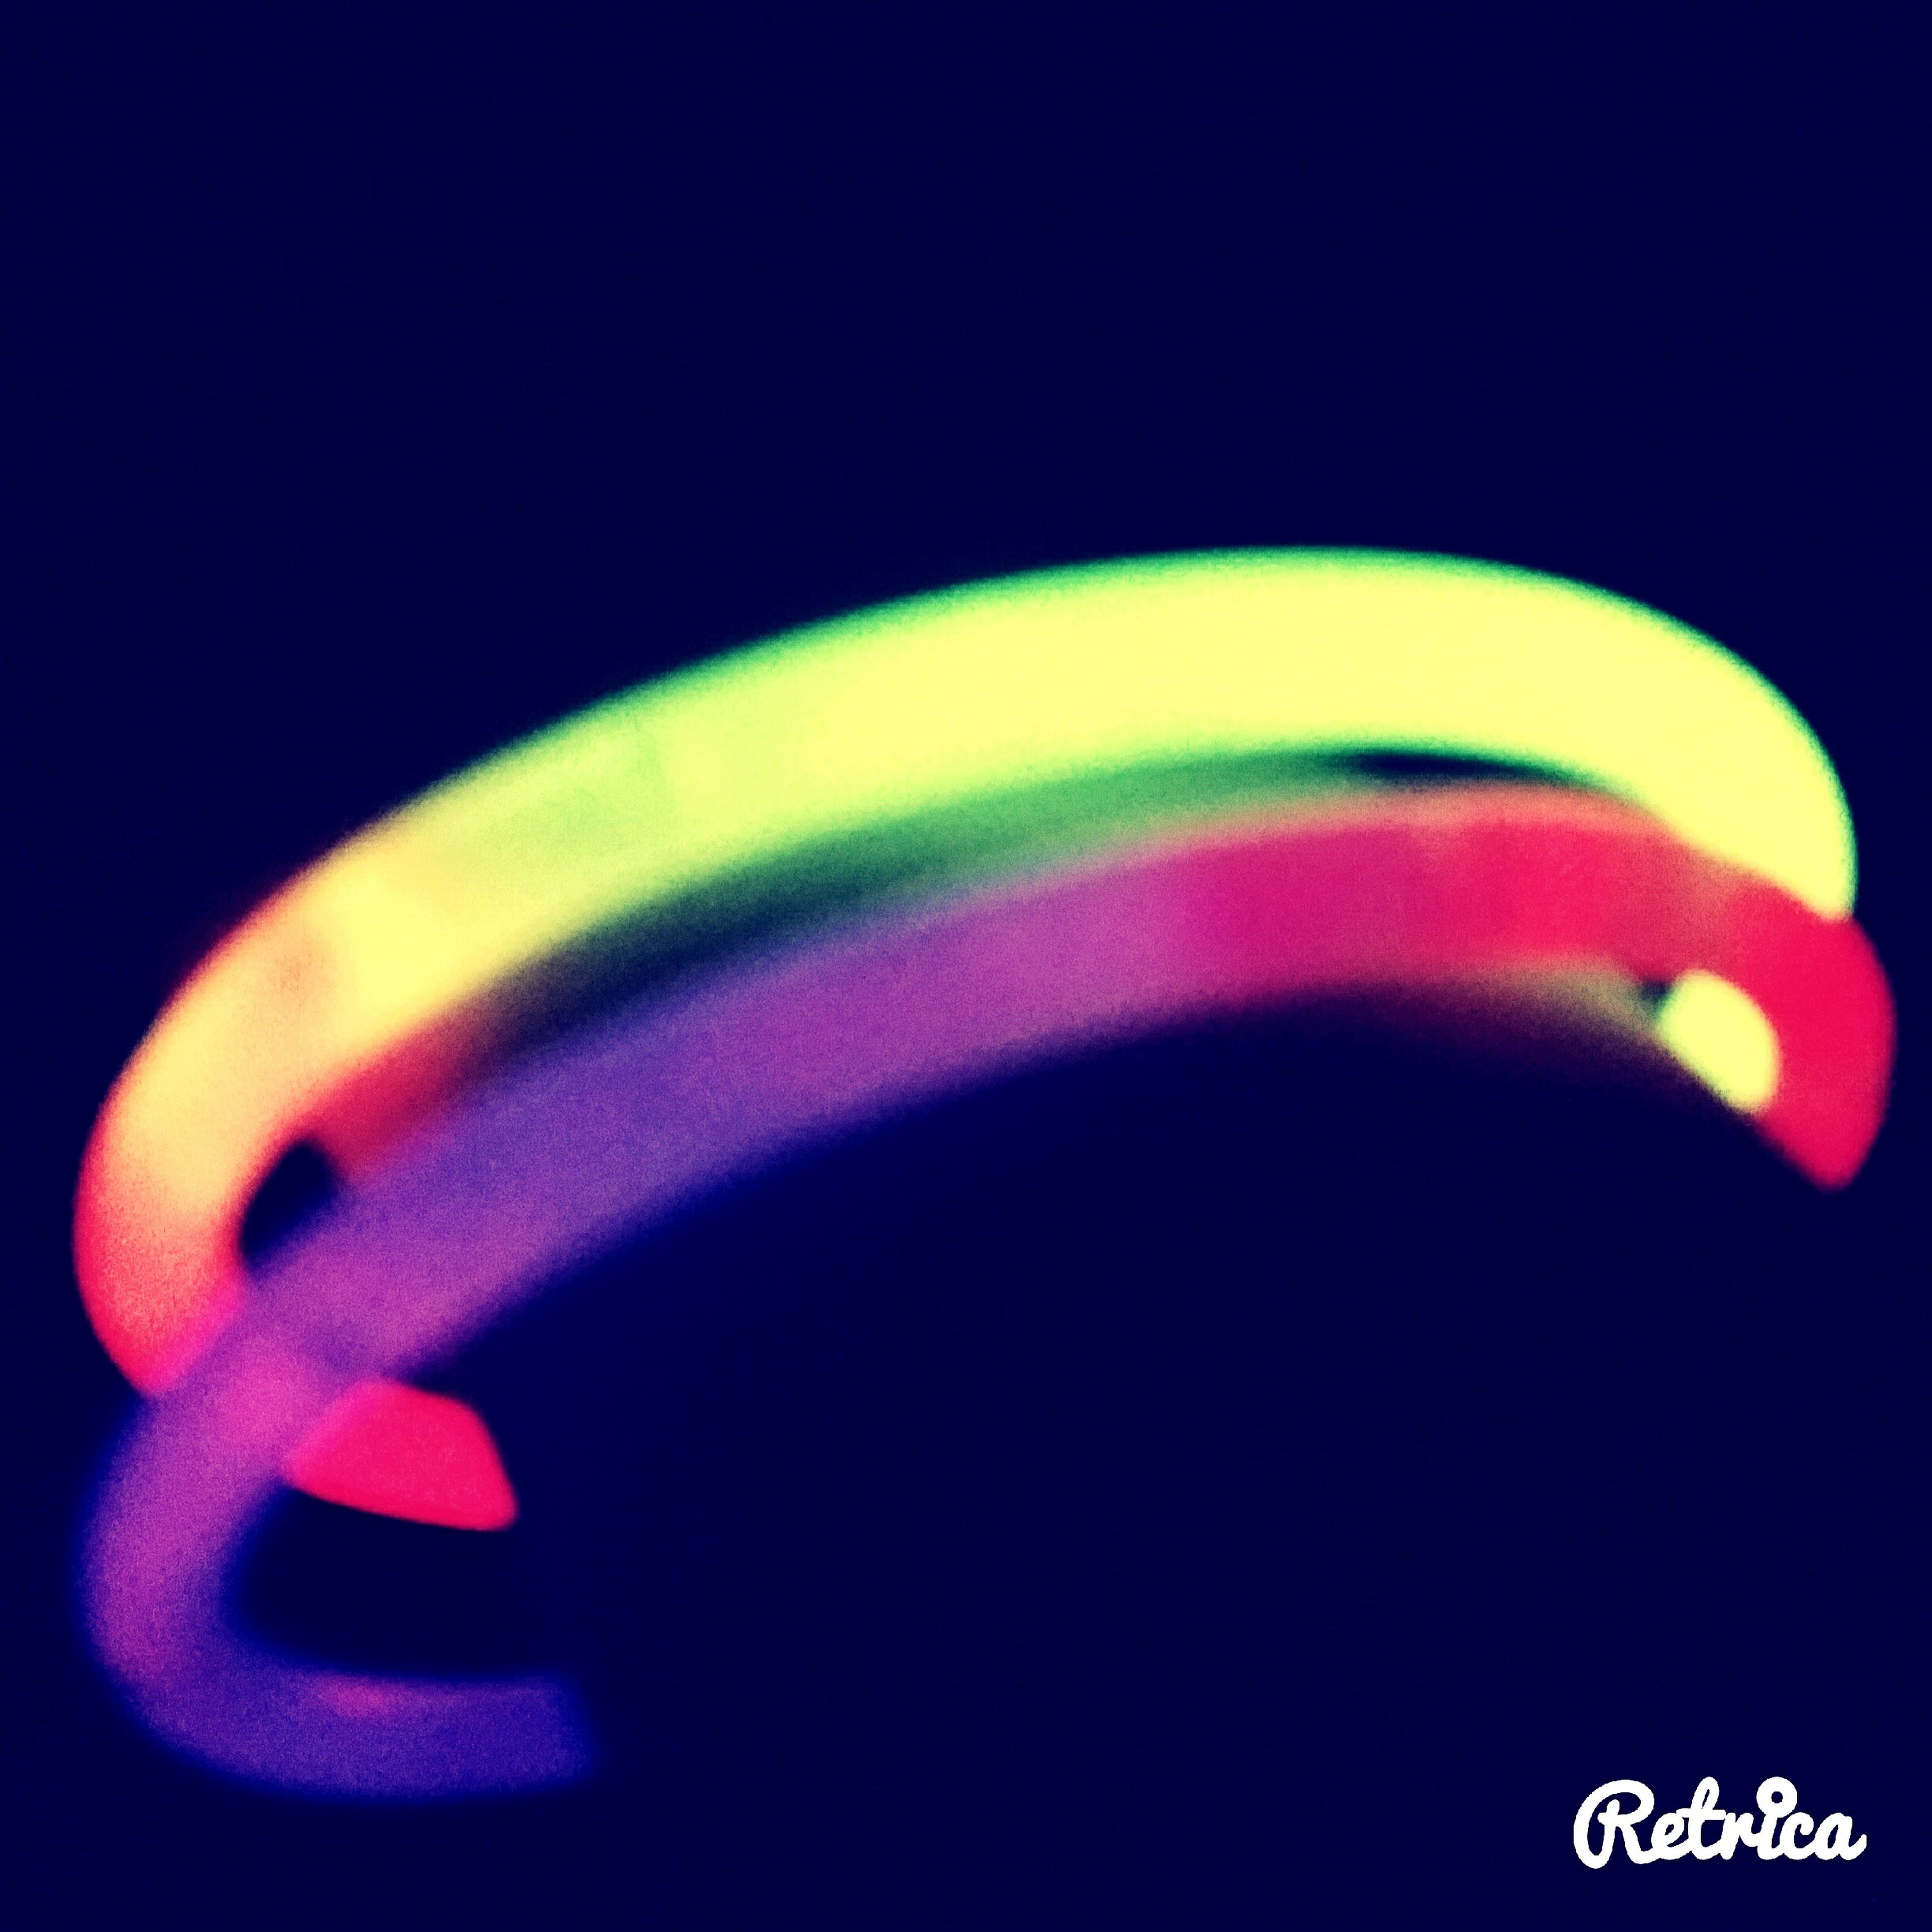 Leuchtstäbe Light Yellow Orange Purple Pink Neon Child Tomorrow Is Silvester The New Year With My Brother With My Sister  I Love This XD Boring Hi 4 Lights Life Your Live Love Your Life  Live Your Life Life Your Love Happy Be Happy Be Crazy Be Not Normally